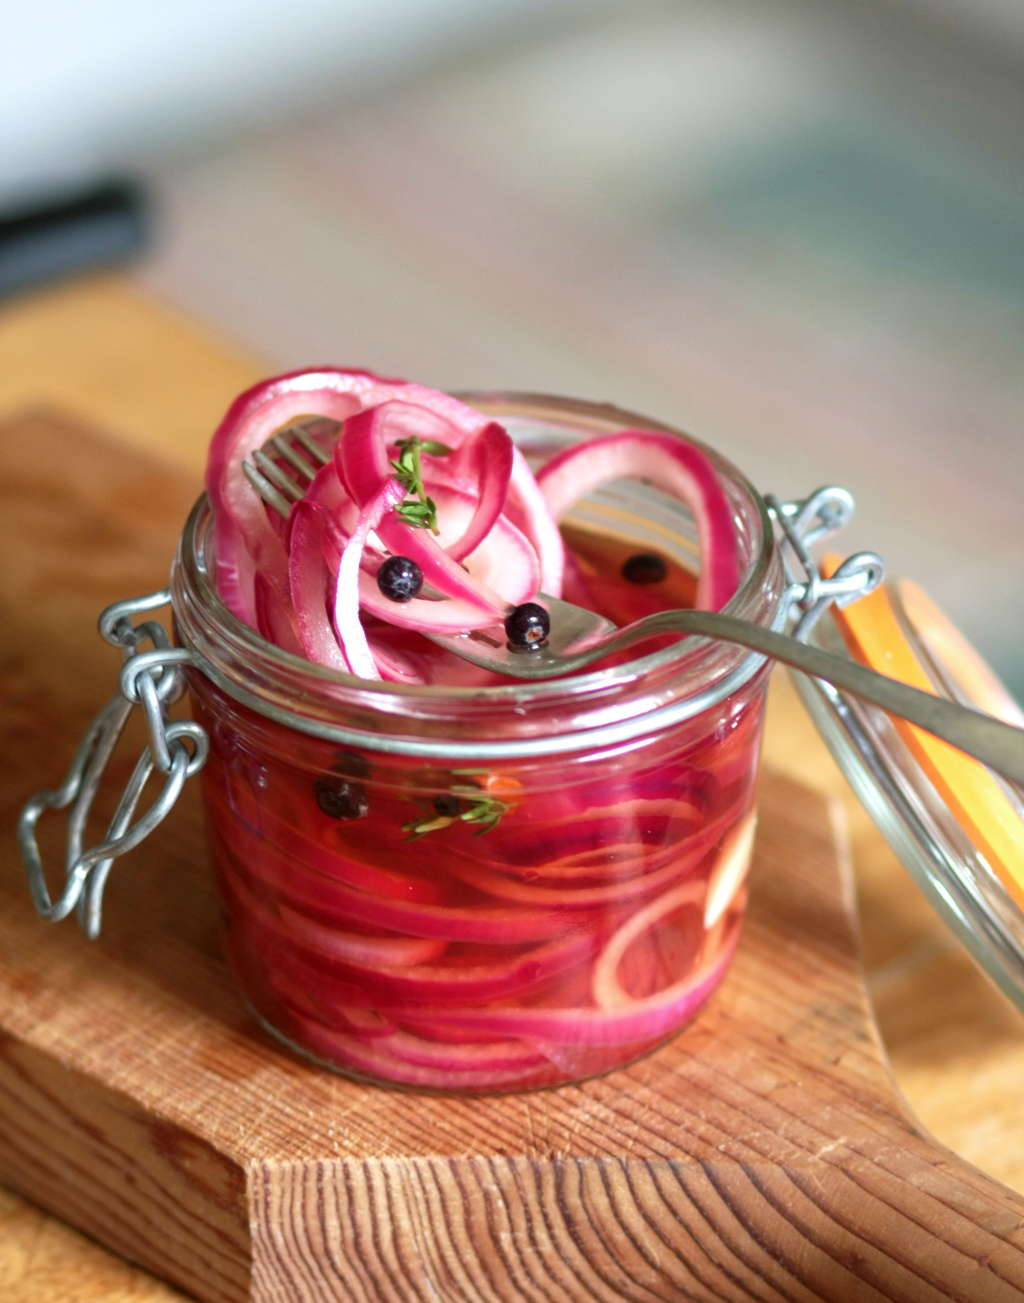 How To Make Quick-Pickled Red Onions: The Video